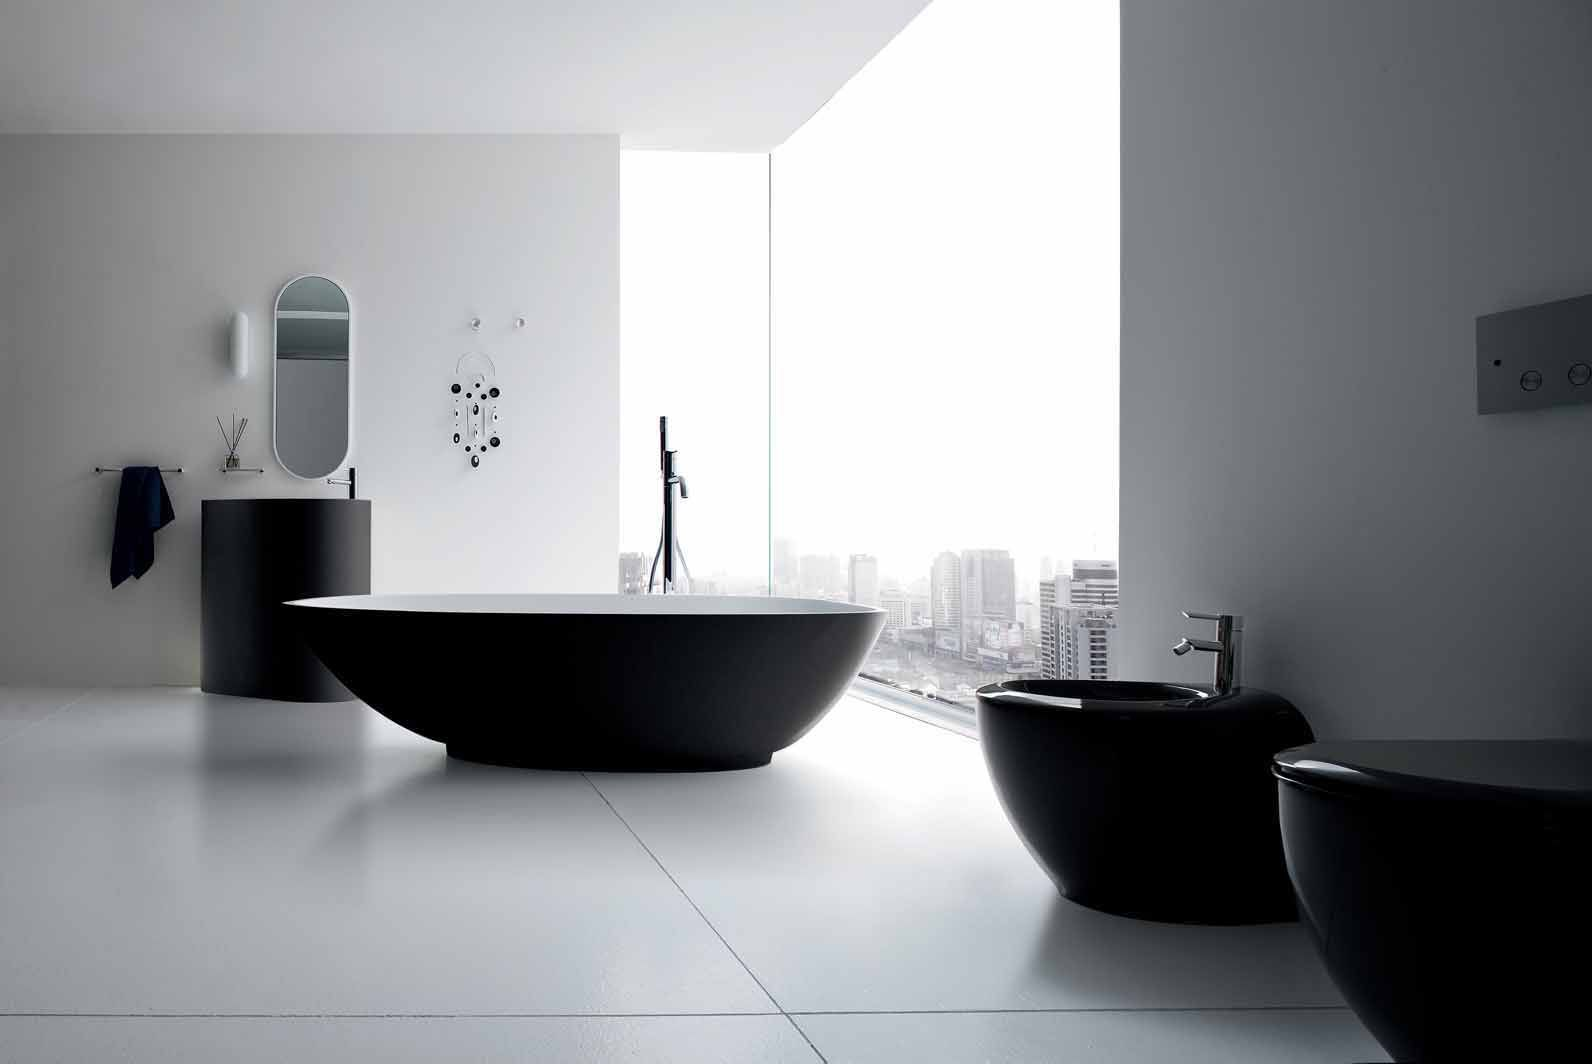 Excellent Refine Black And White Sanitary Ware For Modern Bathroom Vela By Rexa Design Refine Black And White Sanitary Ware With Bathtub